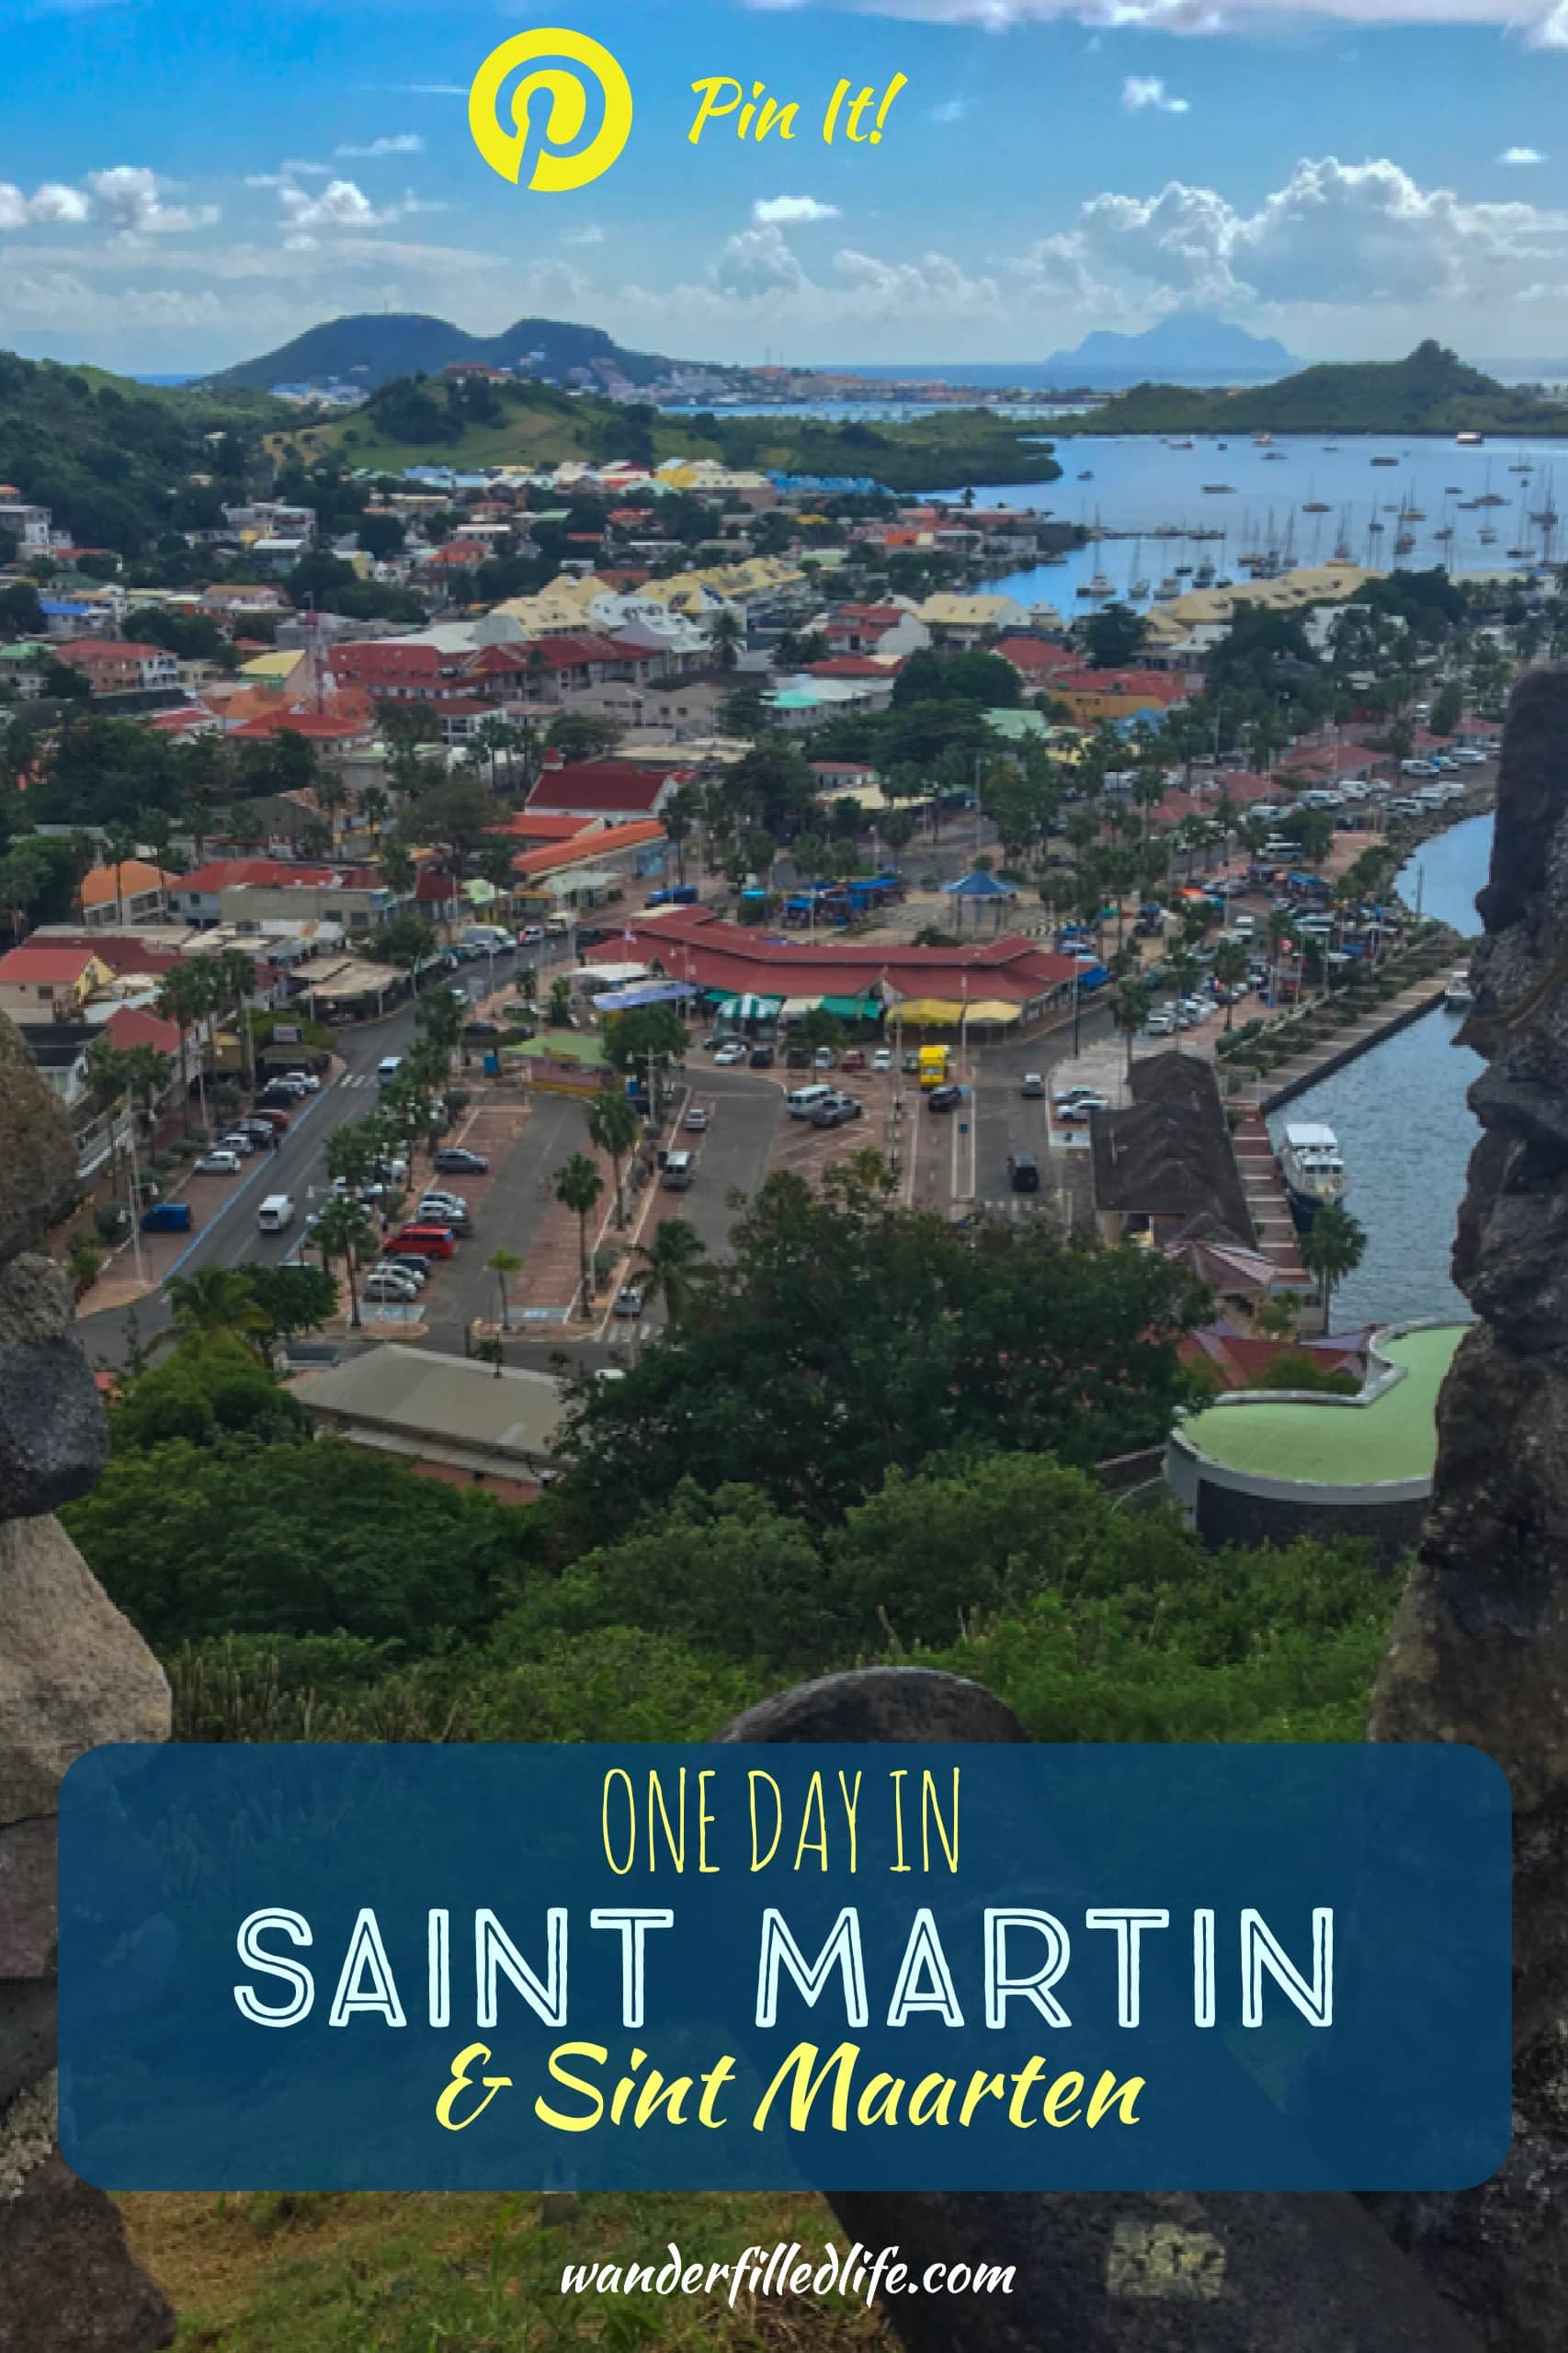 Our visit to Sint Maarten/ Saint Martin... everything from airplanes buzzing the beach to French colonial forts and great deals on whisky.